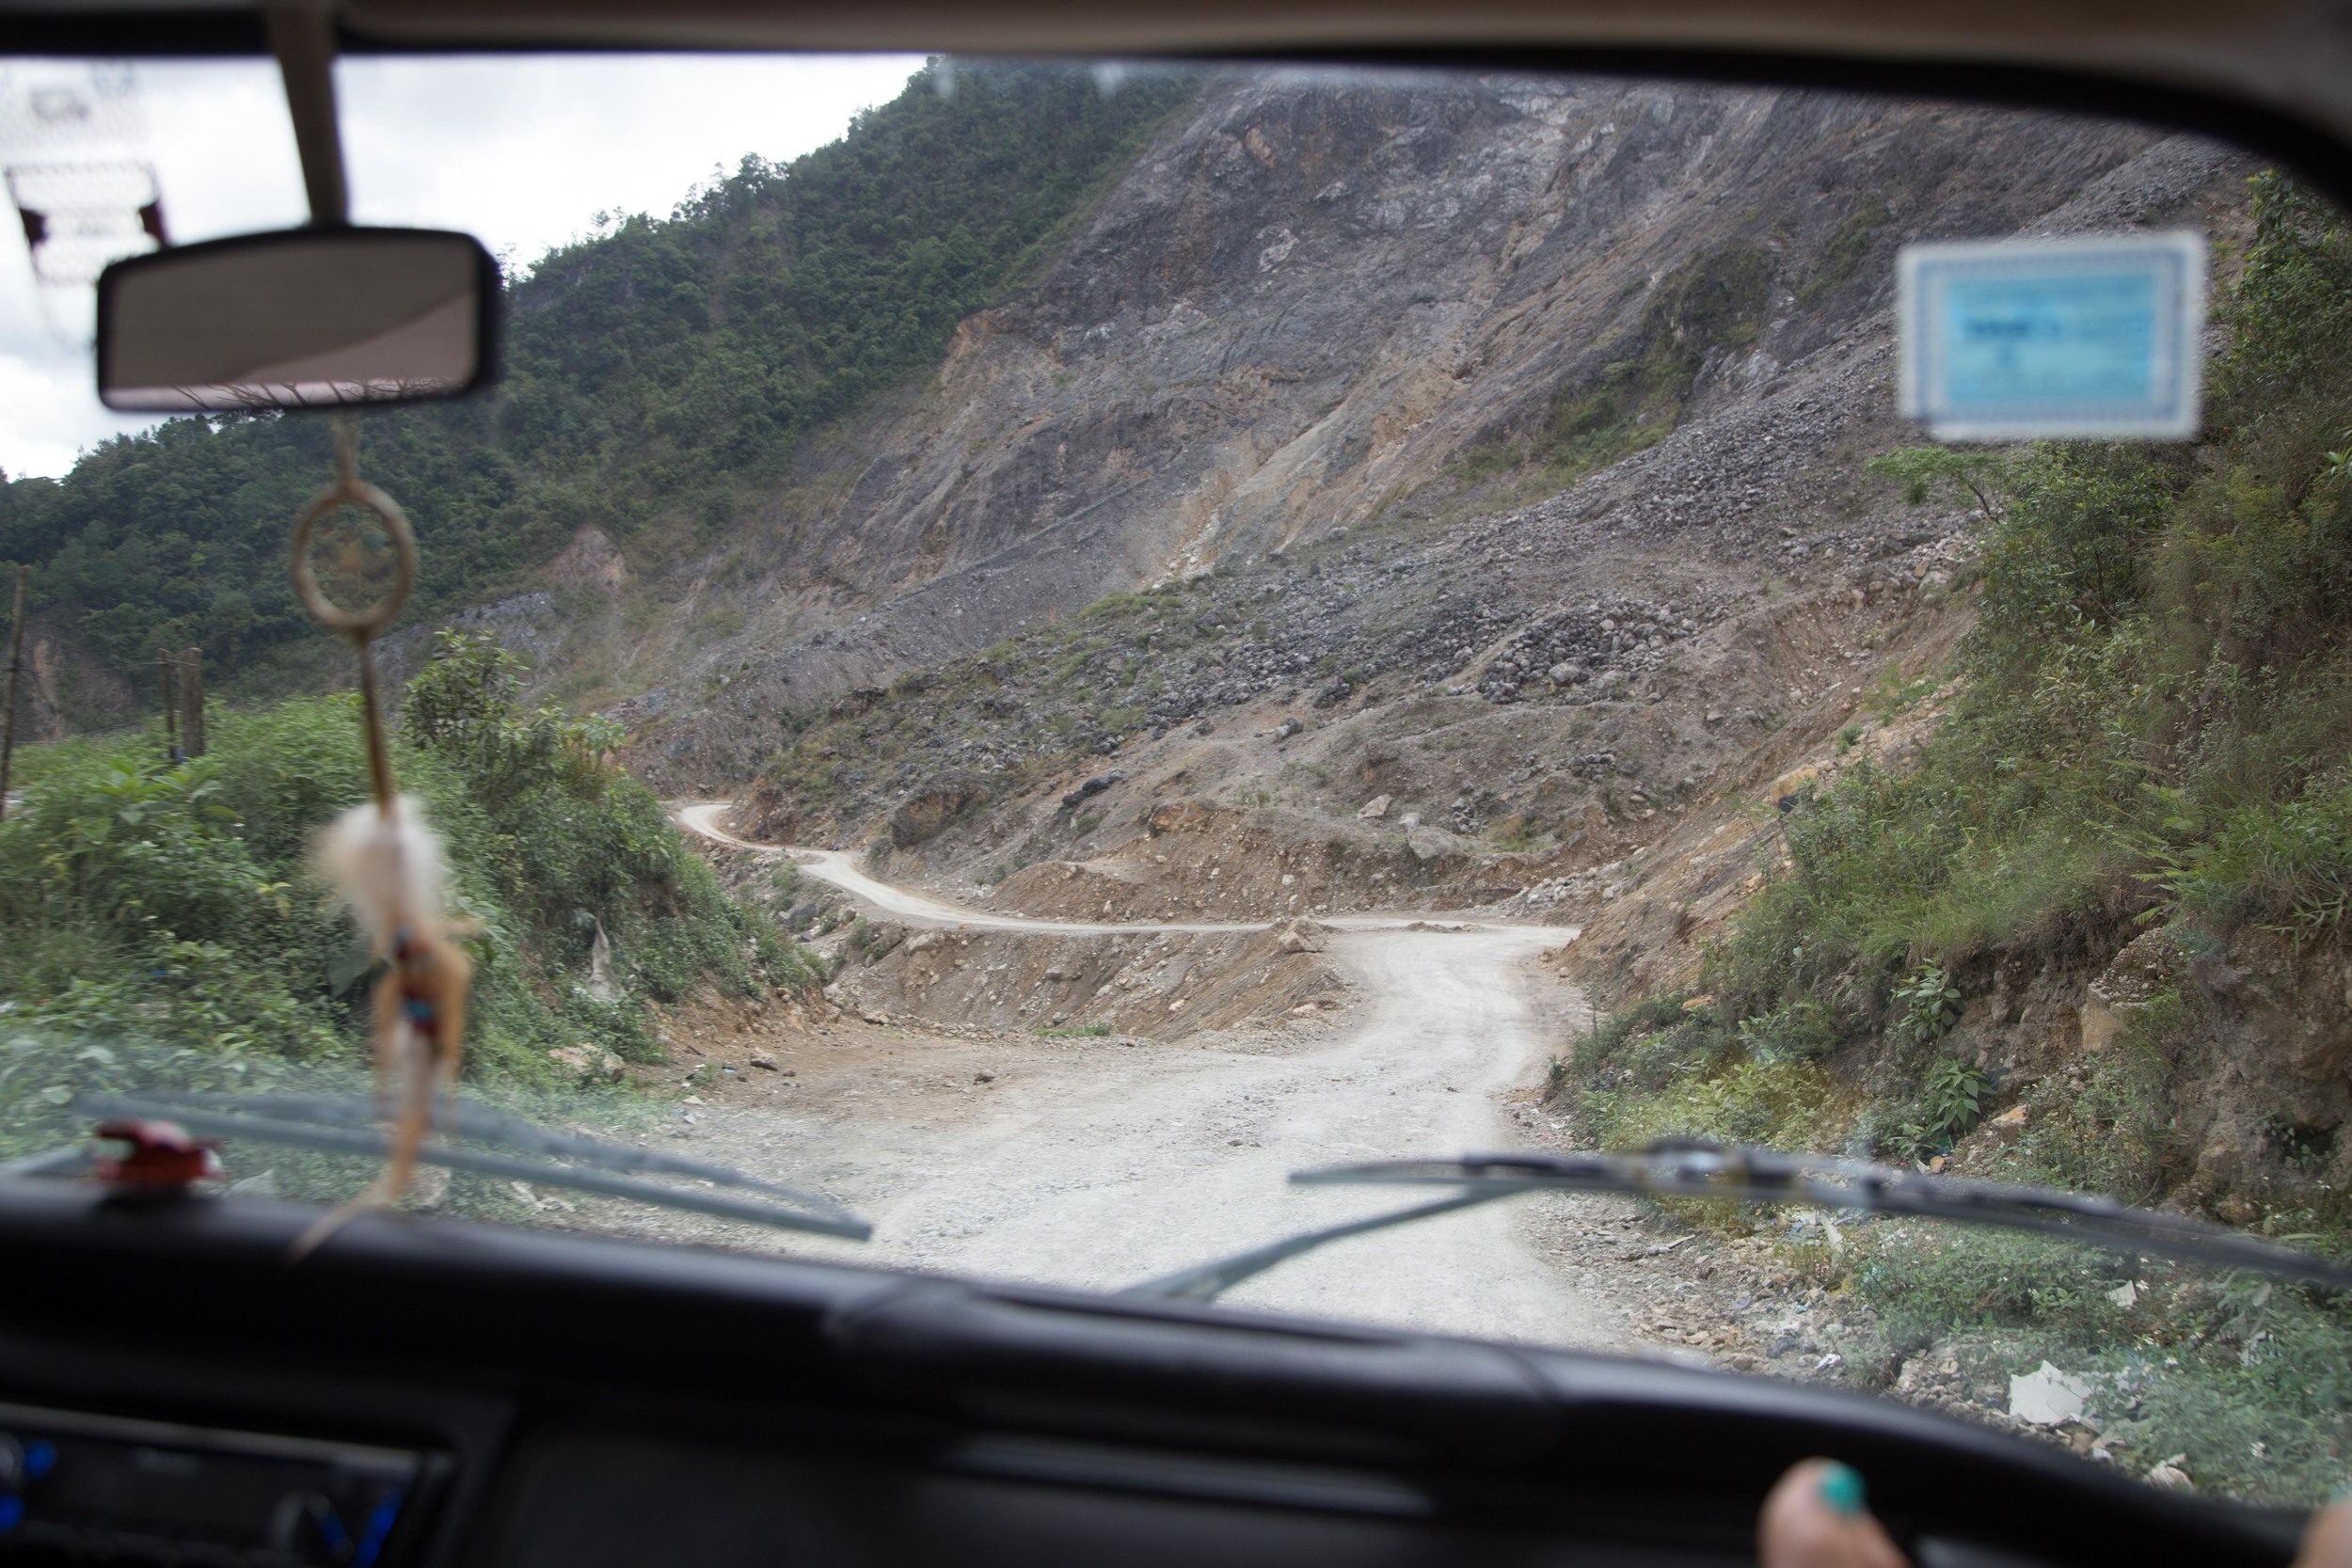 The first sign was this major landslide which wiped out the highway.